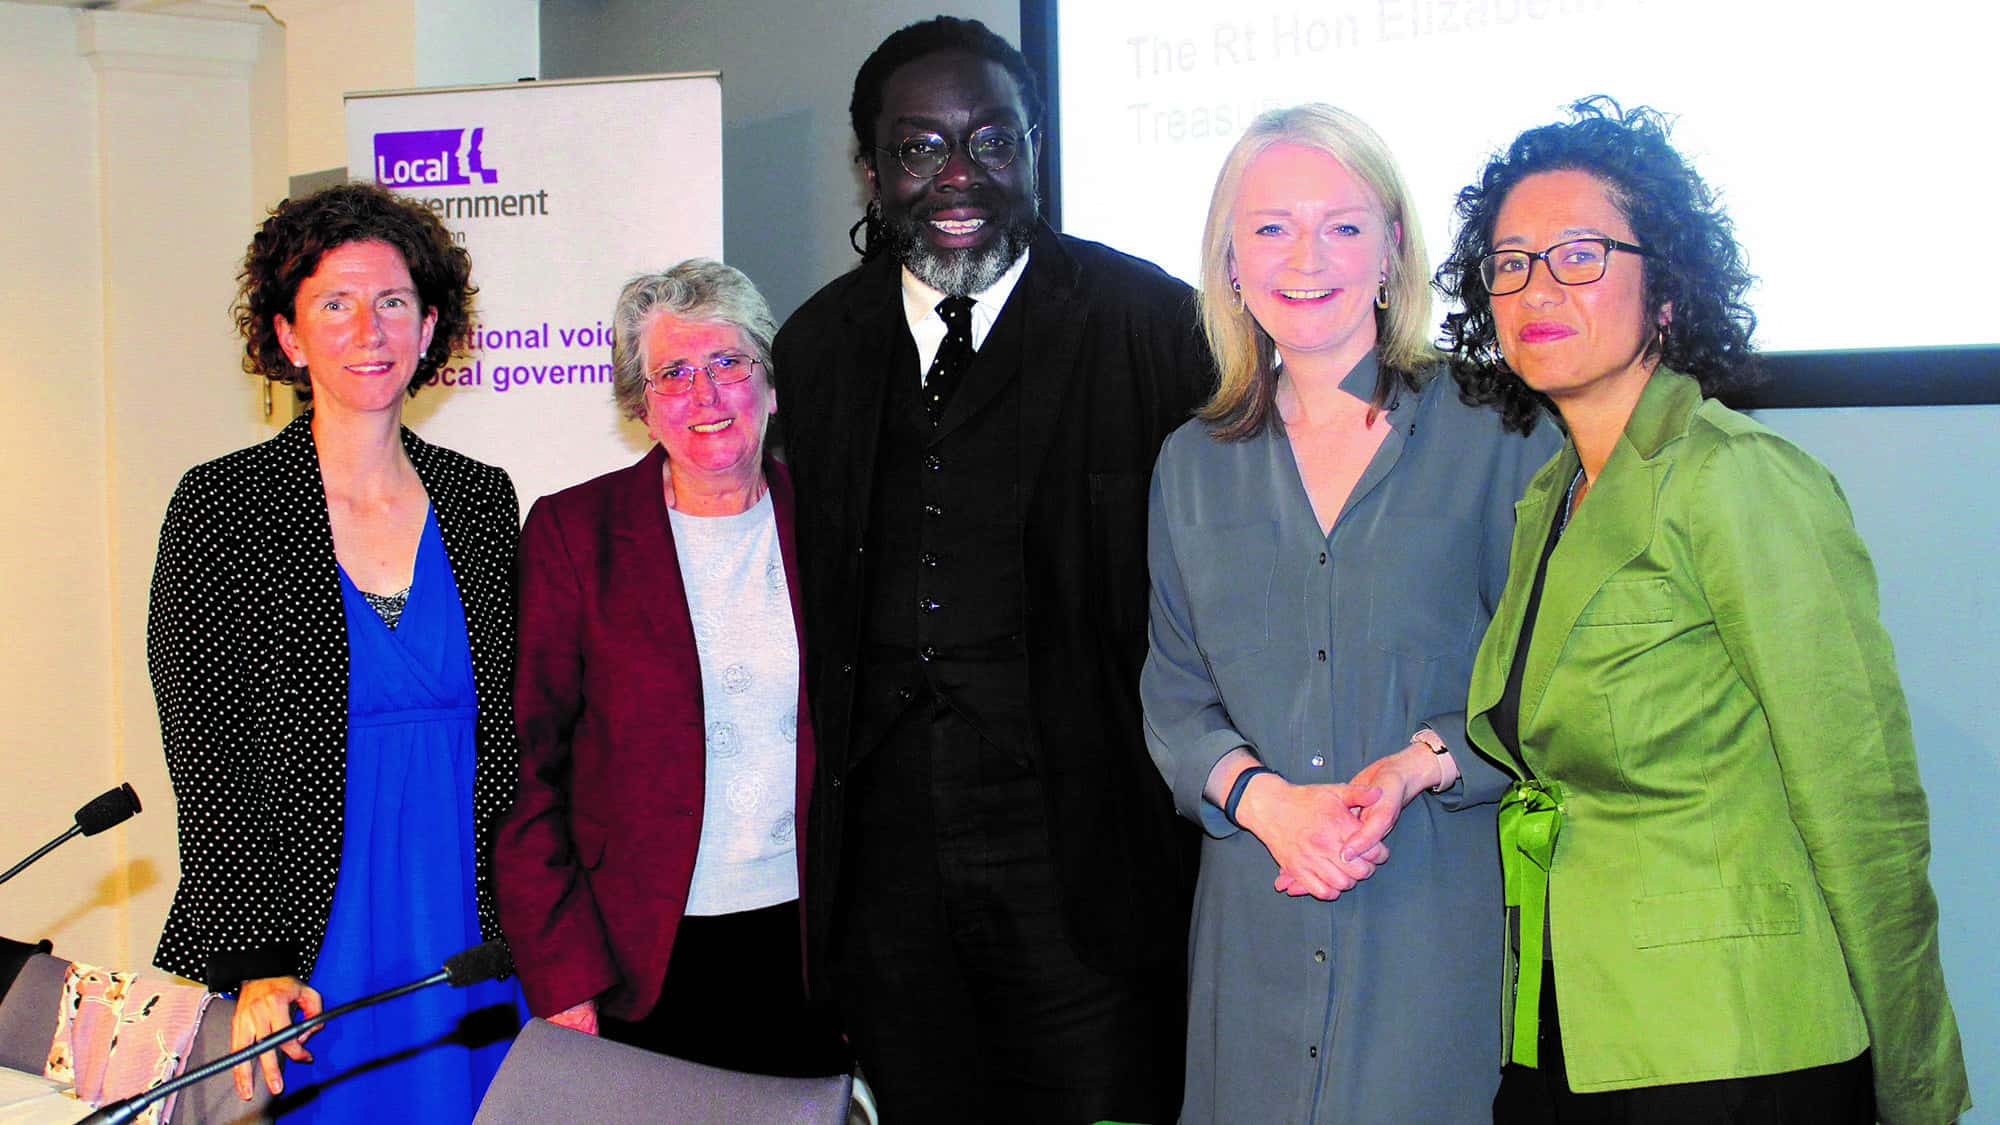 Smith Square debate panellists